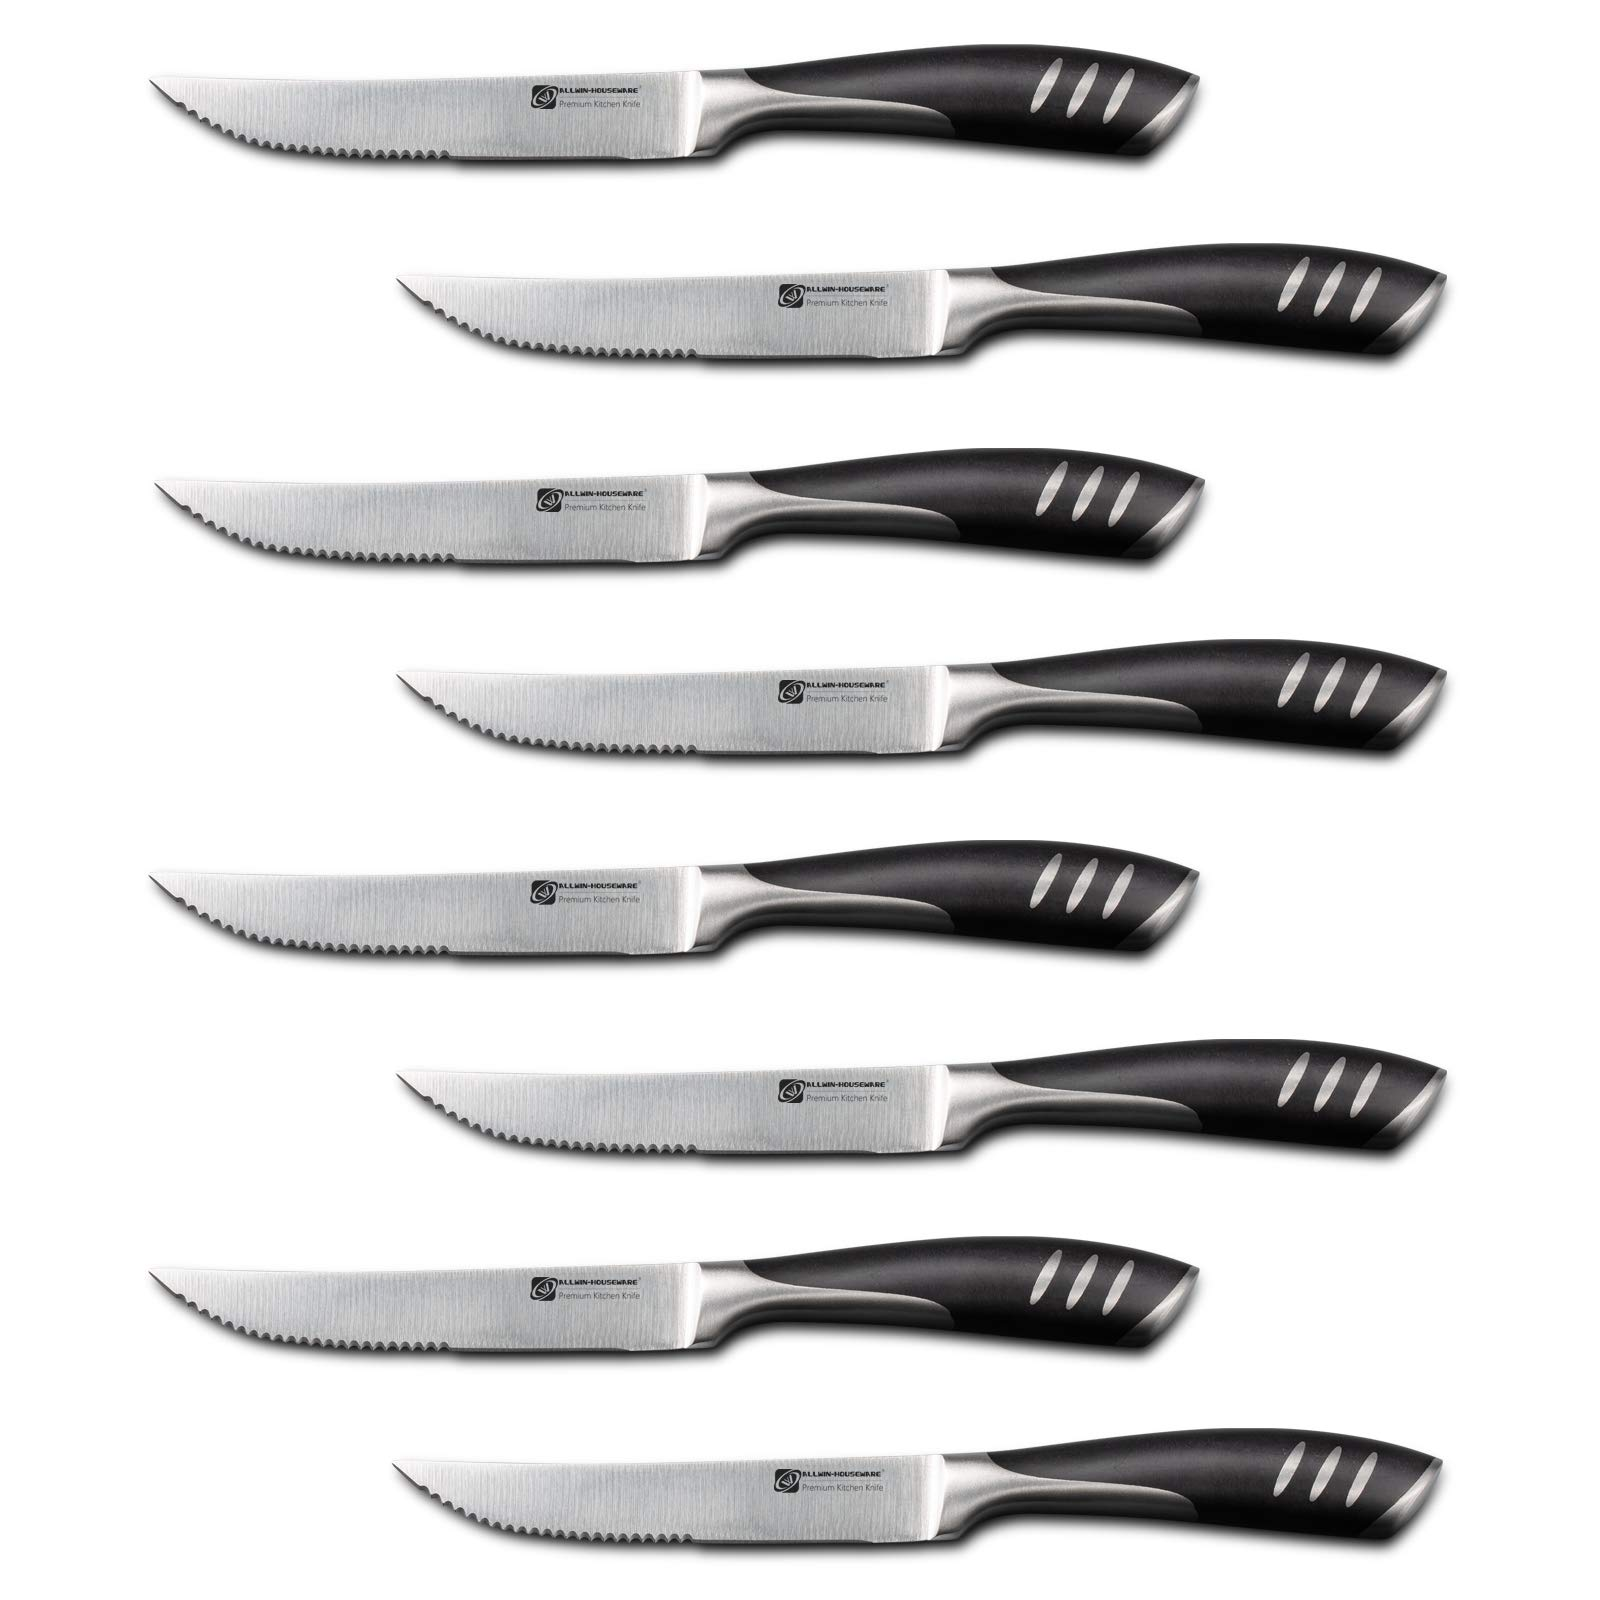 Premium 8-Piece German High Carbon Stainless Steel Steak Knife Set, Double Forged Full Tang Kitchen Dinner Steak Knives by ALLWIN-HOUSEWARE W